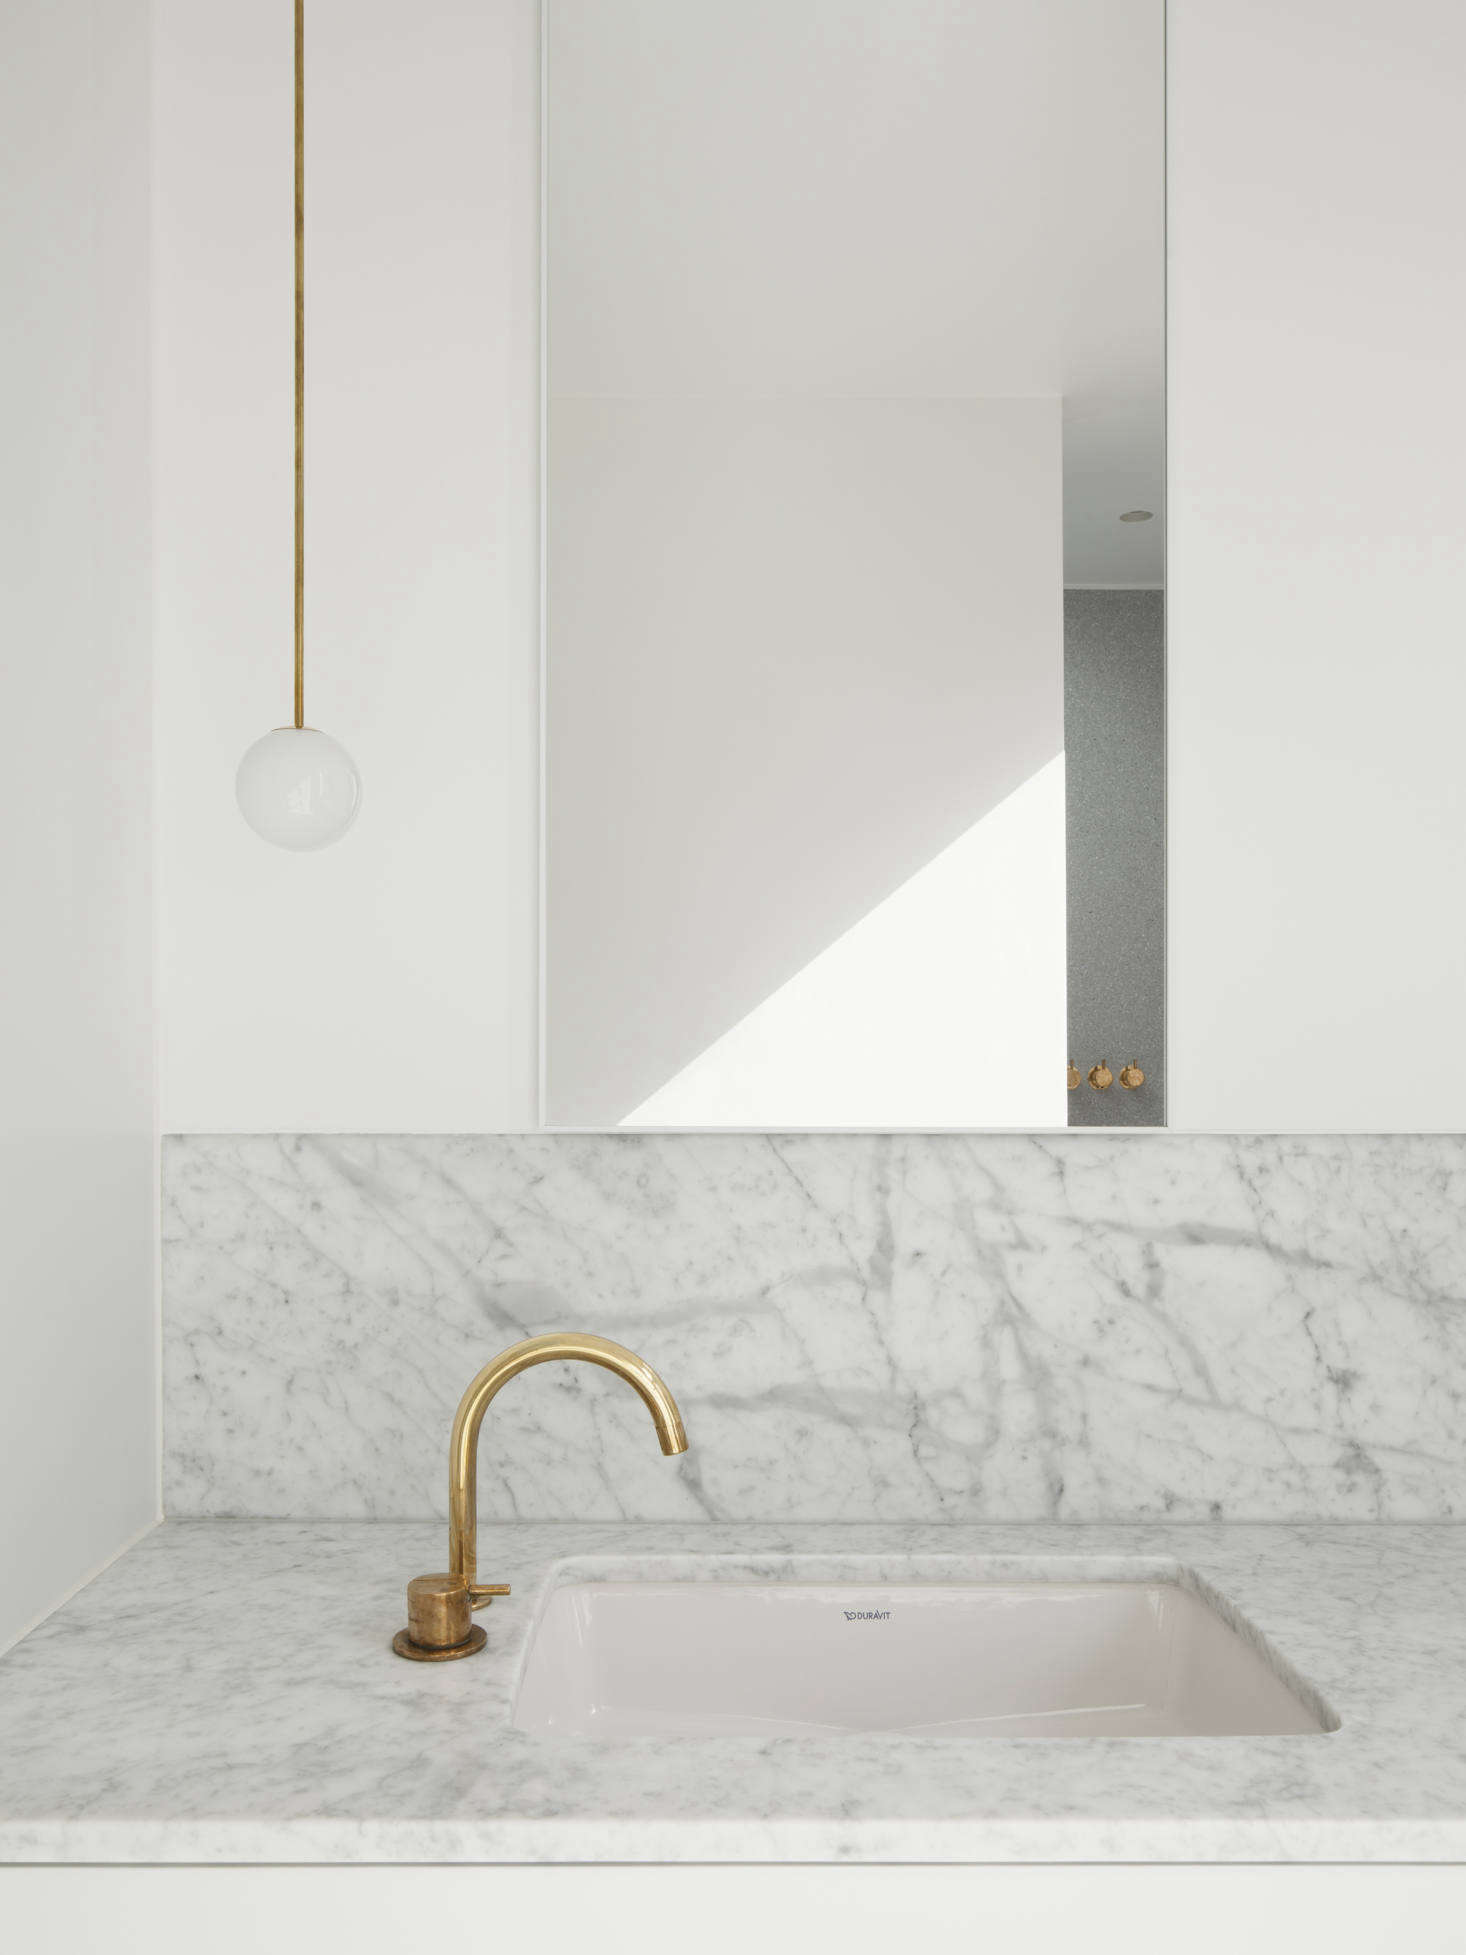 The faucet is a Vola One Handle Mixer 590V in natural brass and the sink is the Duravit D-Code Vanity Basin. The light is Michael Anastassiades's Brass Pendant 80 Rod.